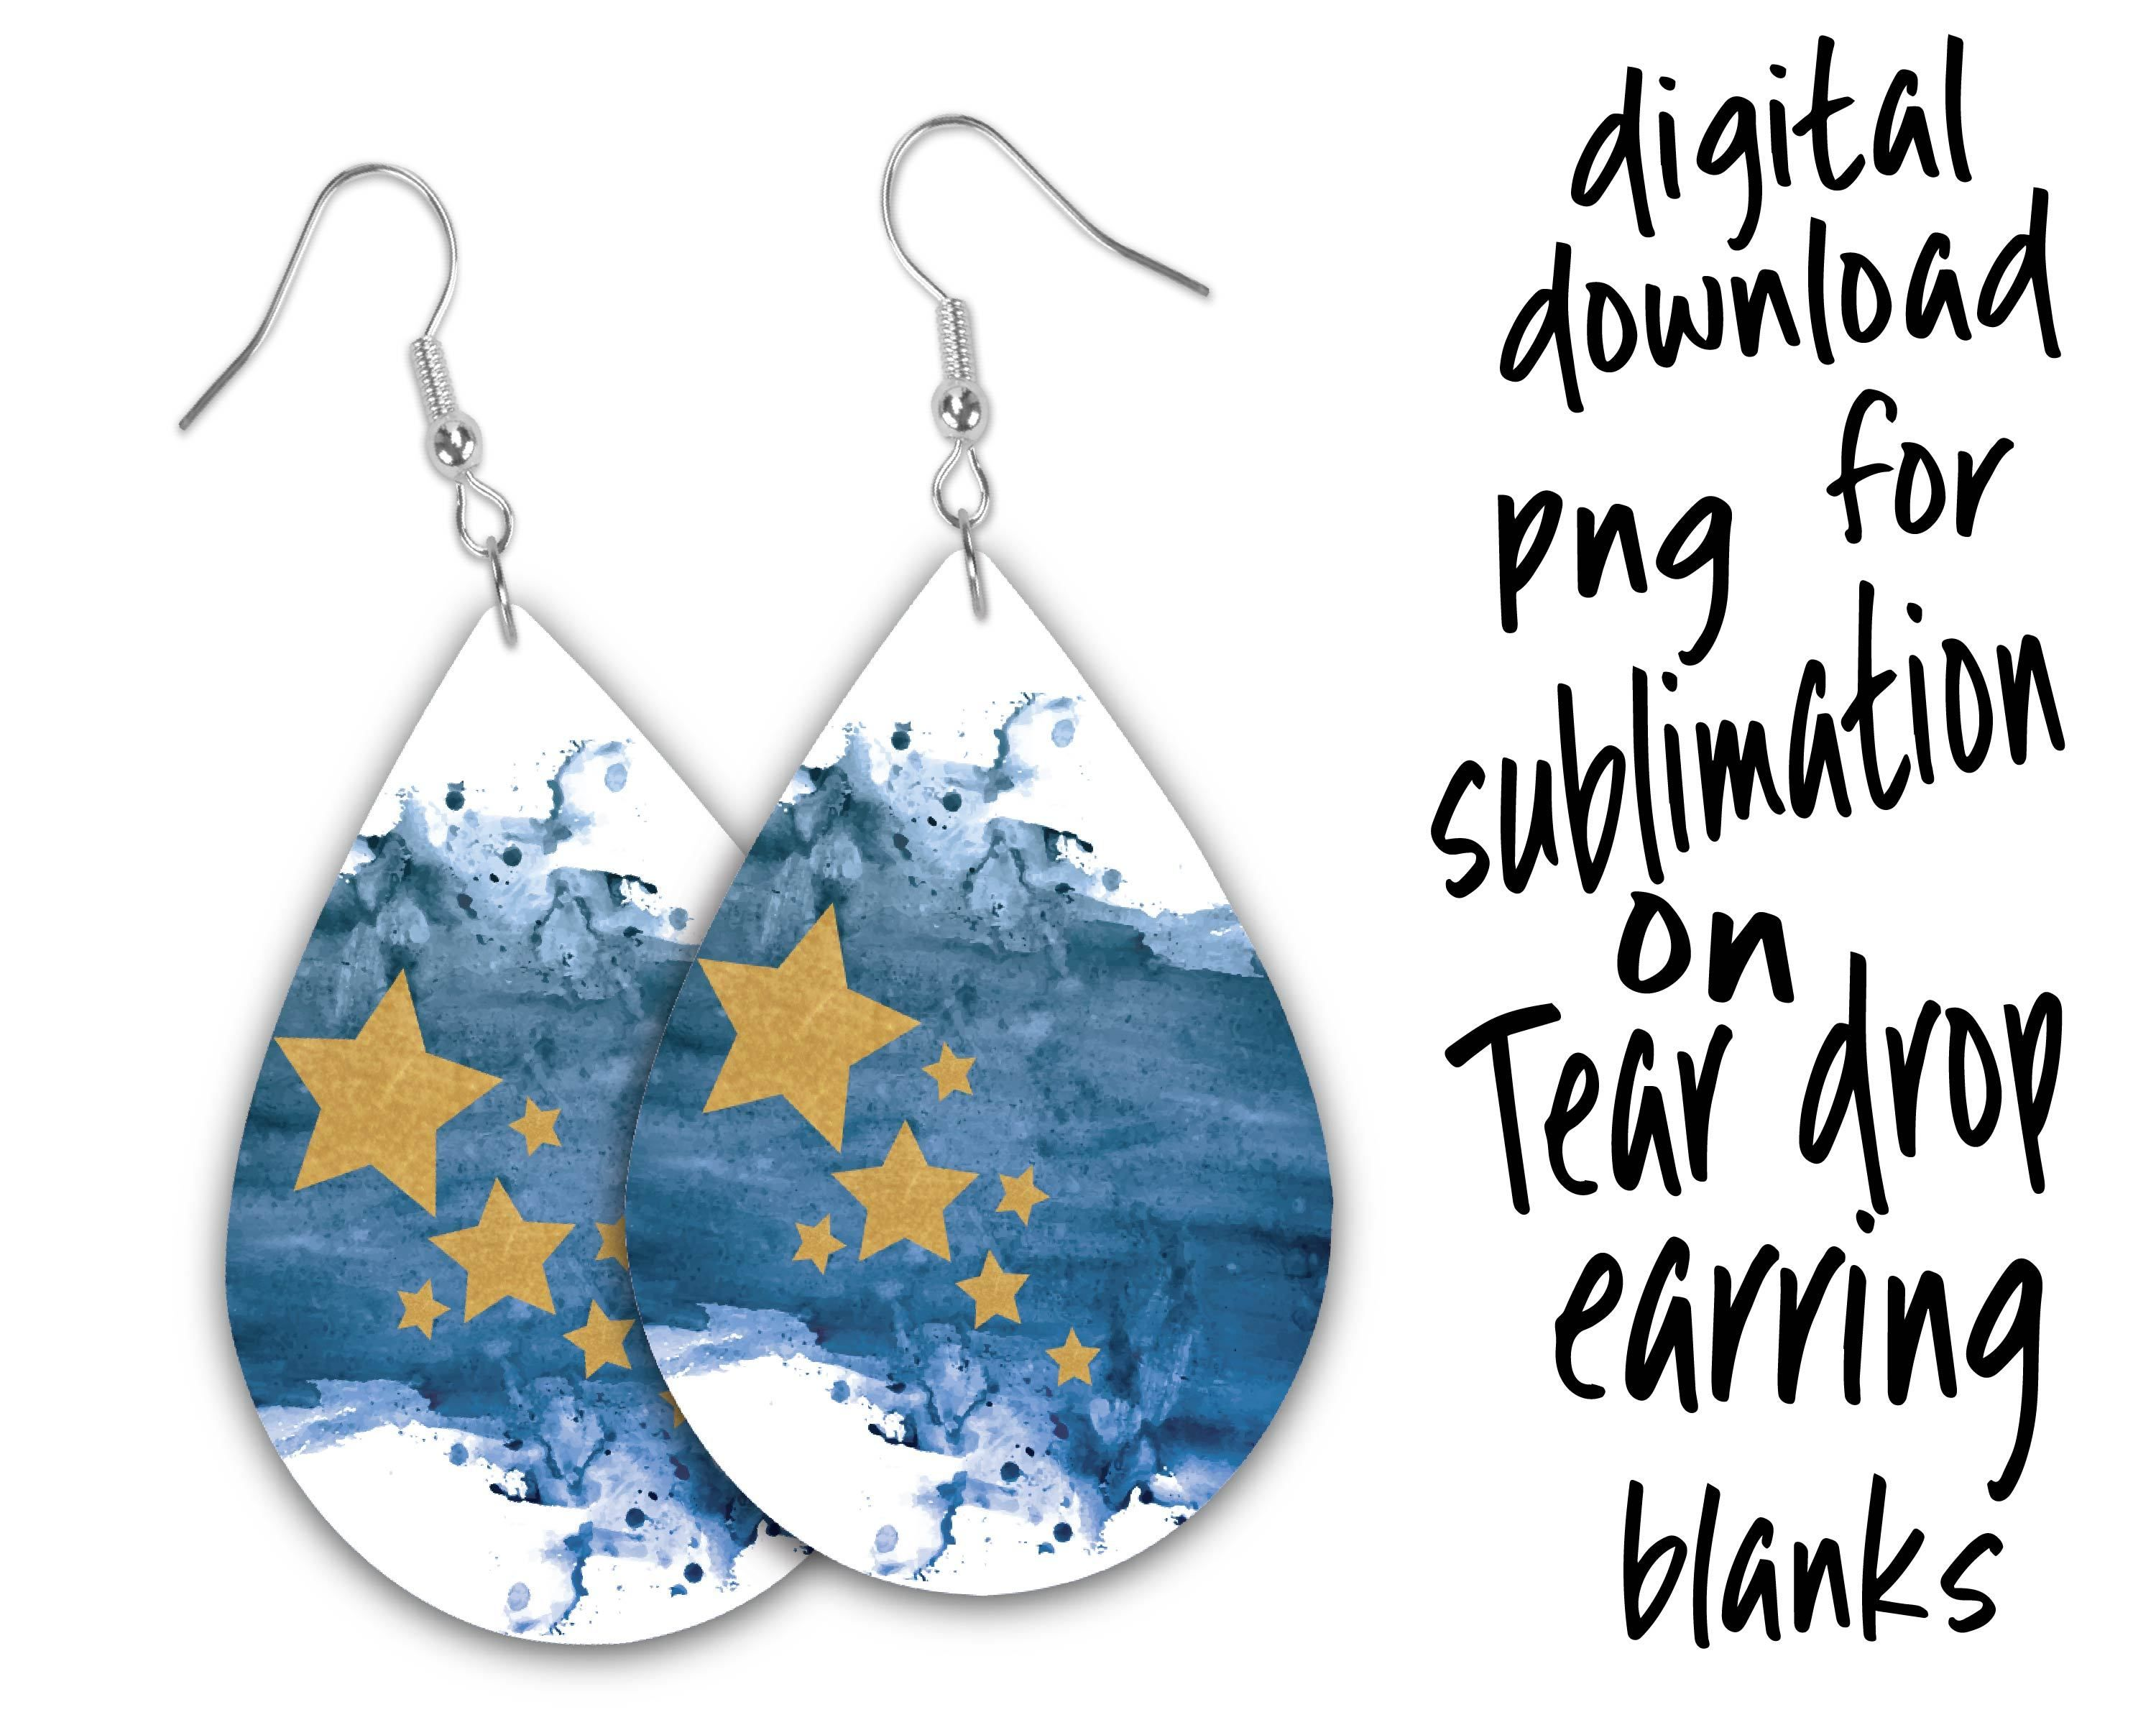 Christmas Sublimation Png For Tear Drop Earrings Drop Earrings Printable Designs Sublime